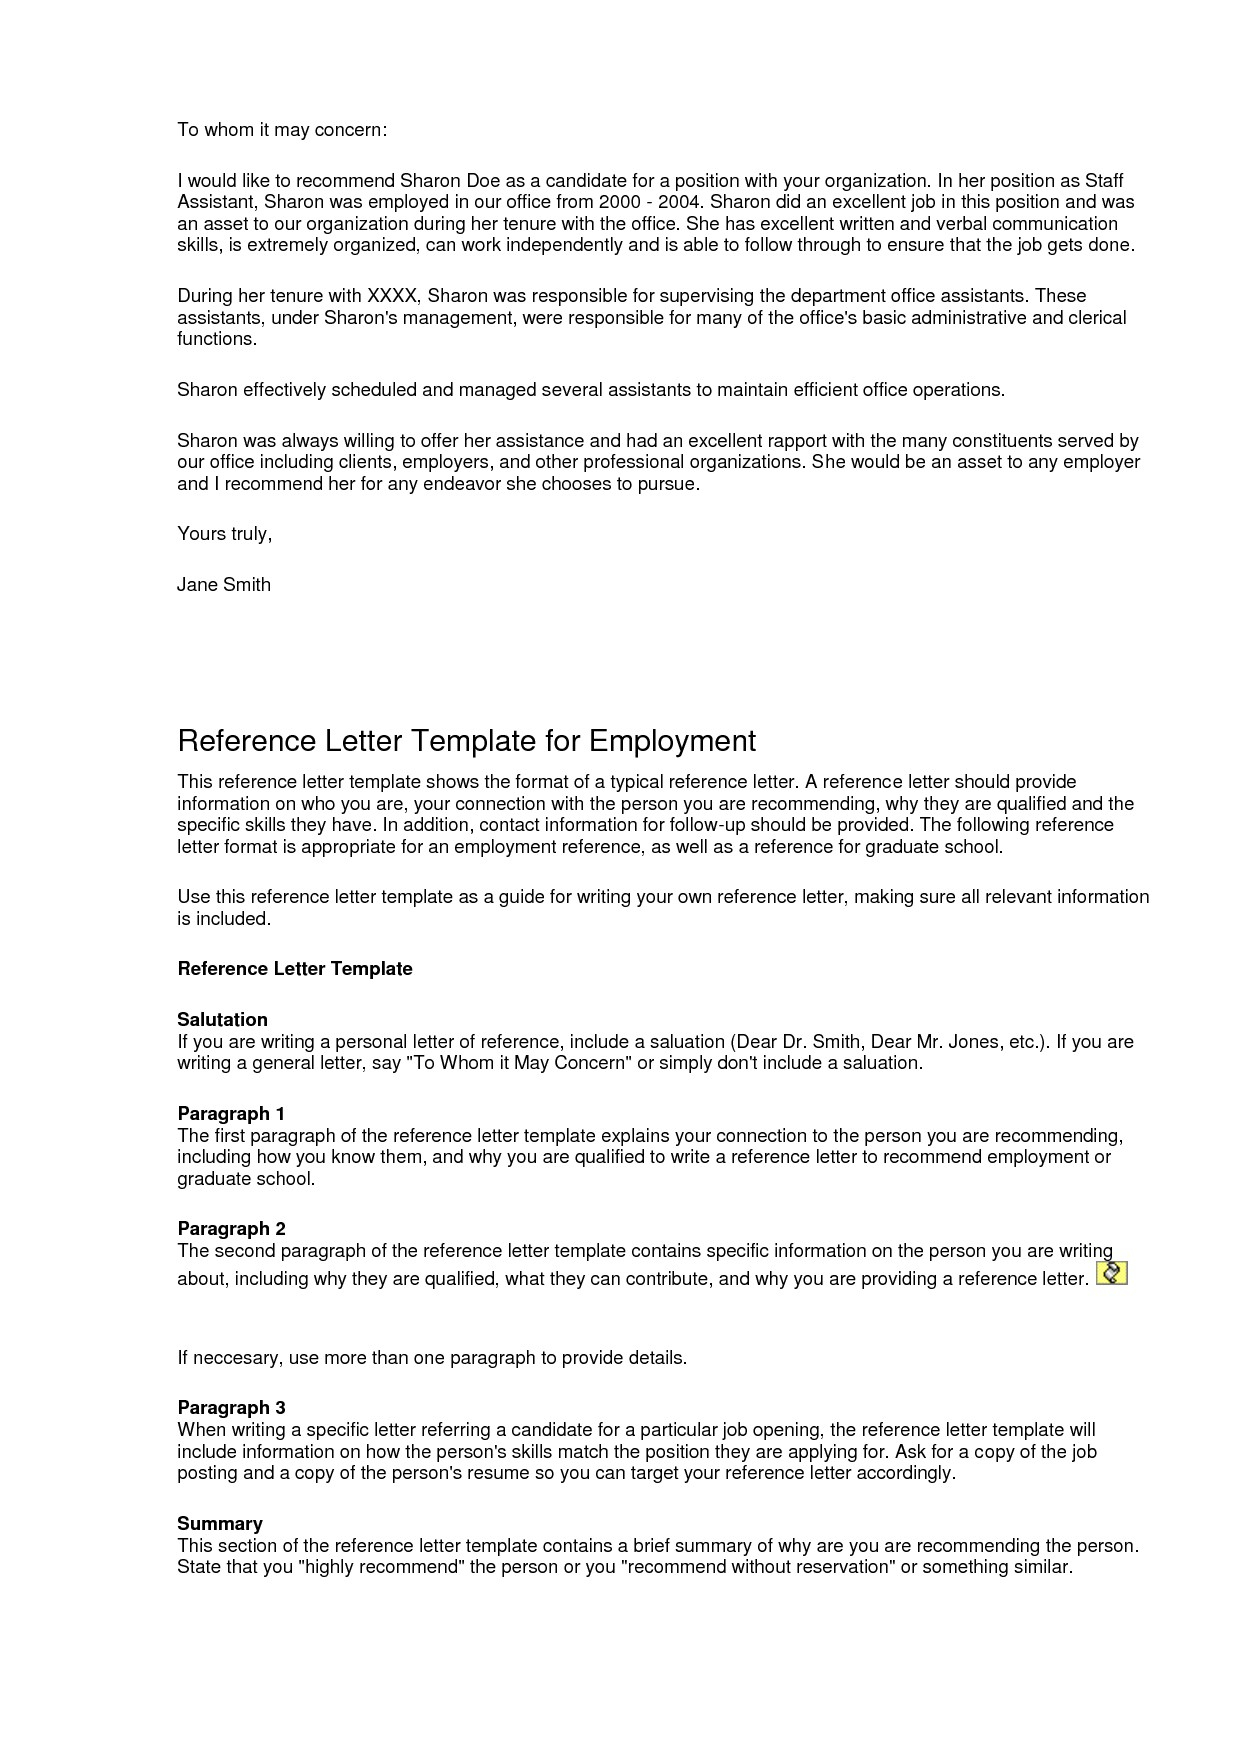 College Reference Letter Template - Examples Letters Re Mendation for Job Applicants Valid